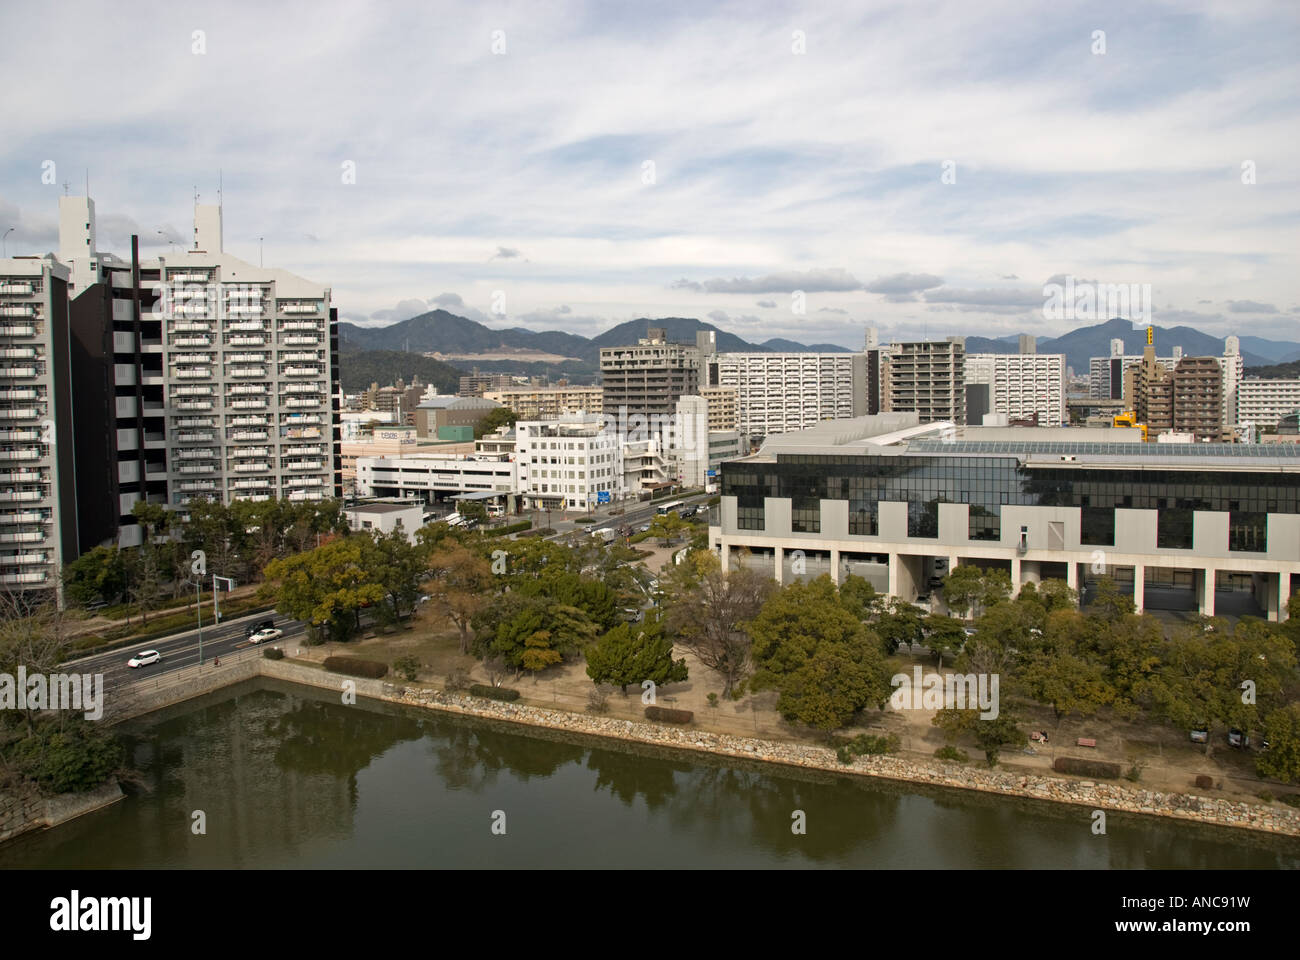 Hiroshima, Japan. View from top of Hiroshima castle showing modern city - Stock Image